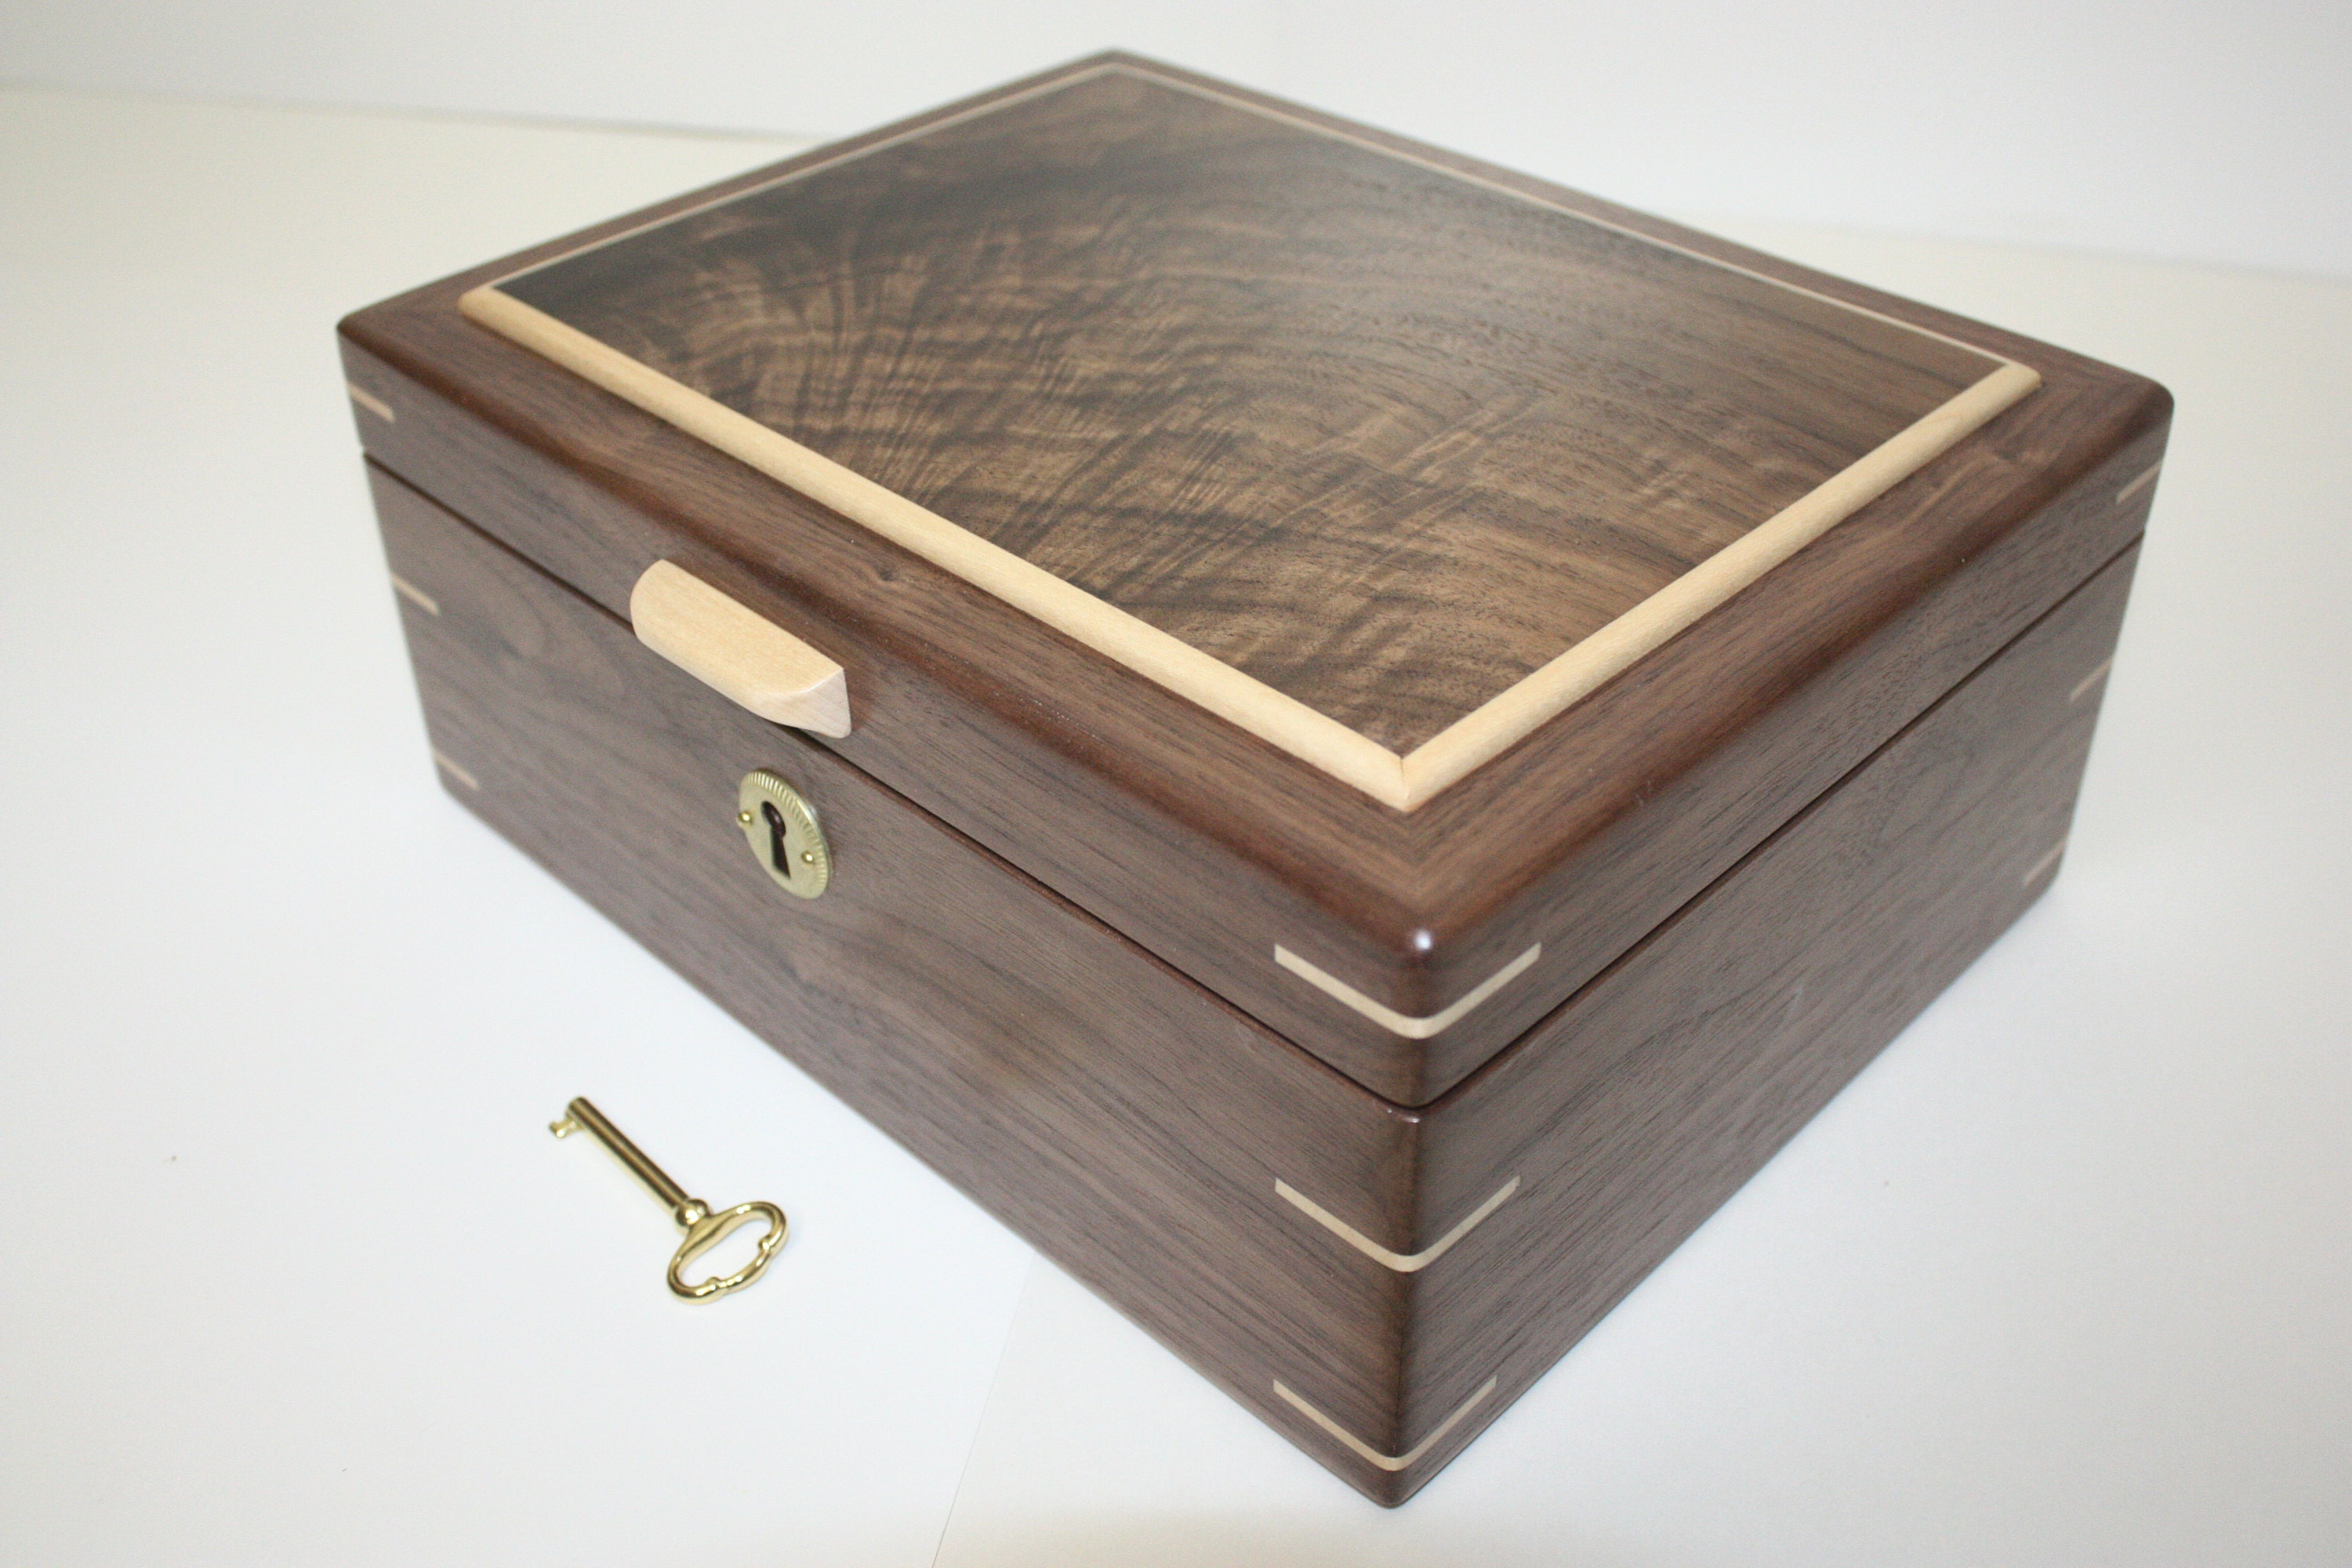 Locking wooden box